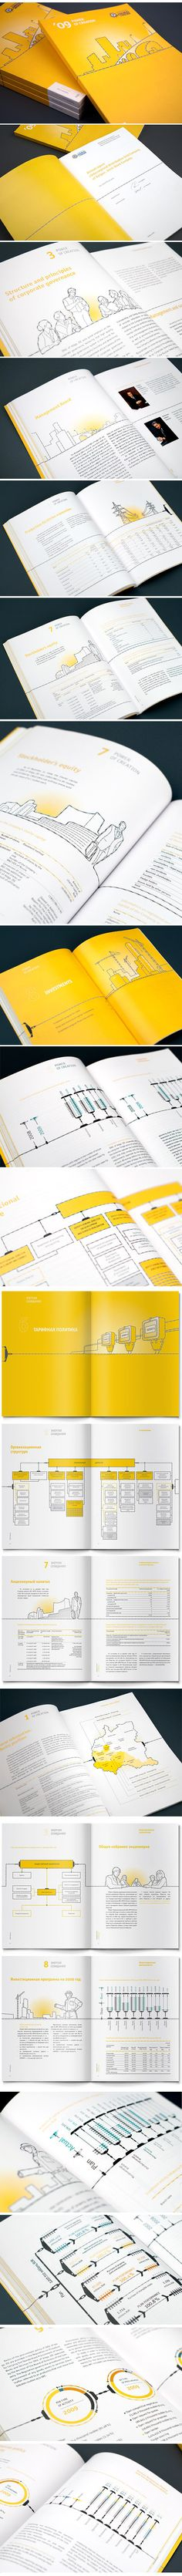 Annual report IDGC of Volga on Behance